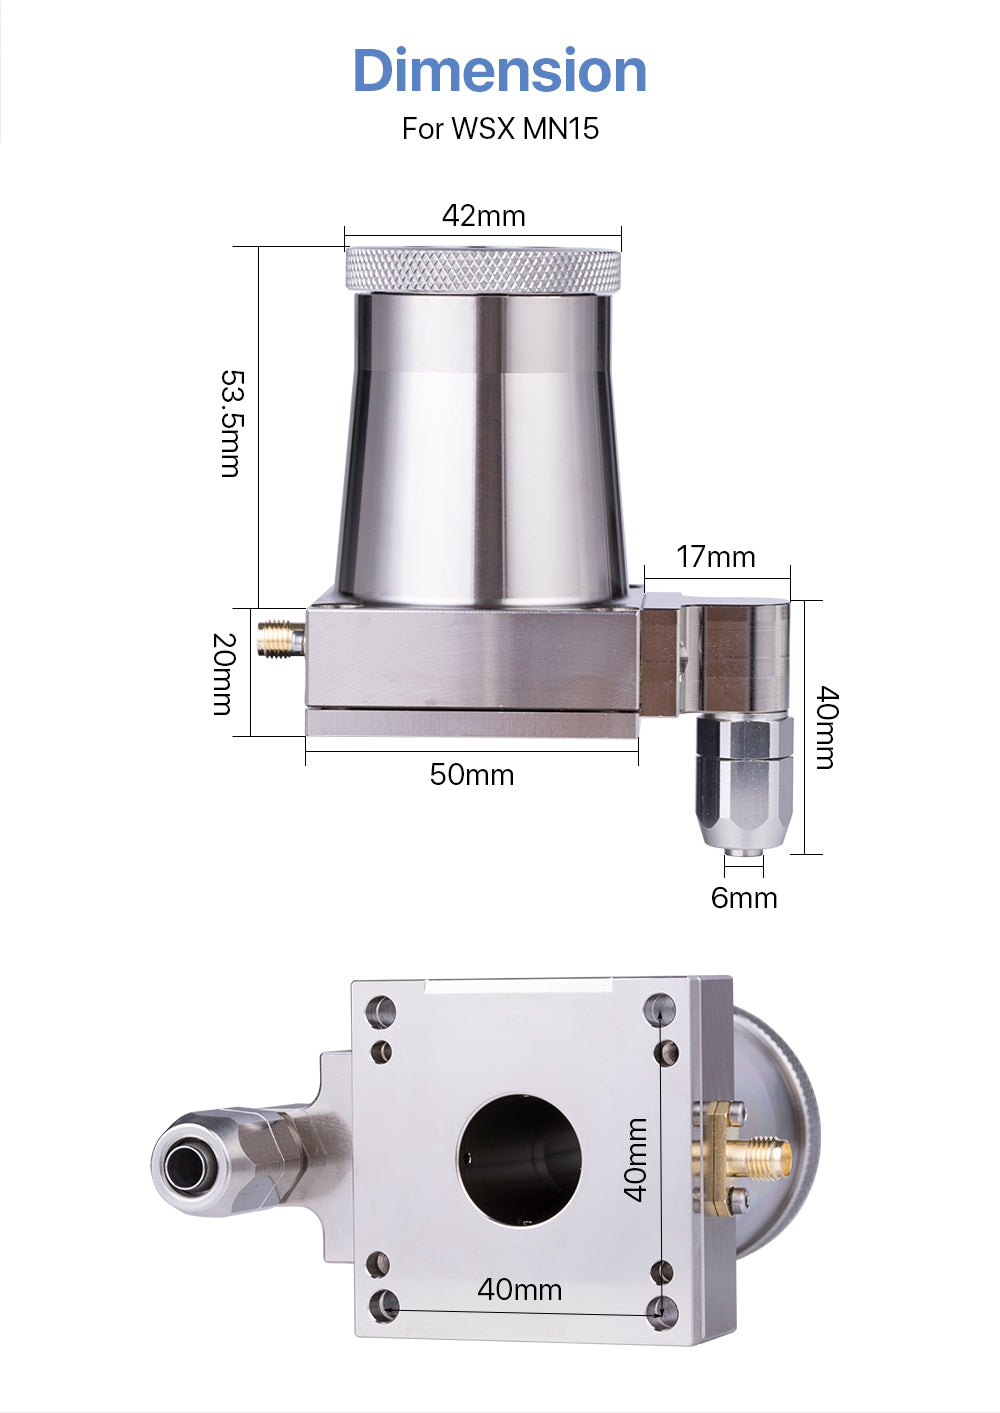 Nozzle Connector for WSX MN15 Fiber Laser Cutting Head